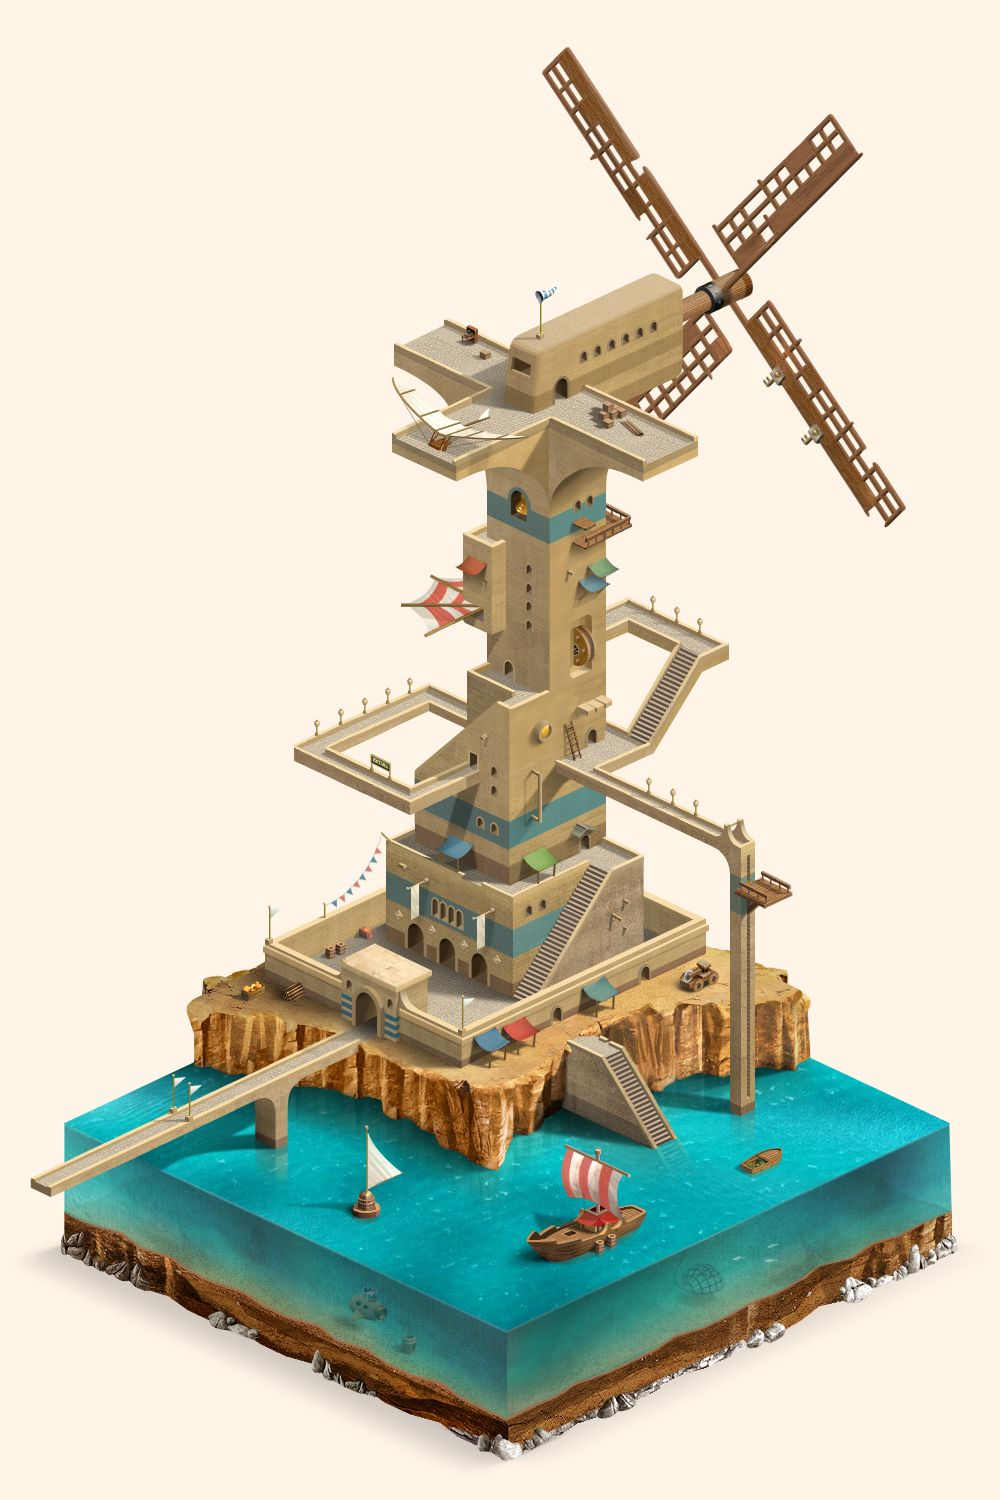 Flying fish City on Behance id love to see more